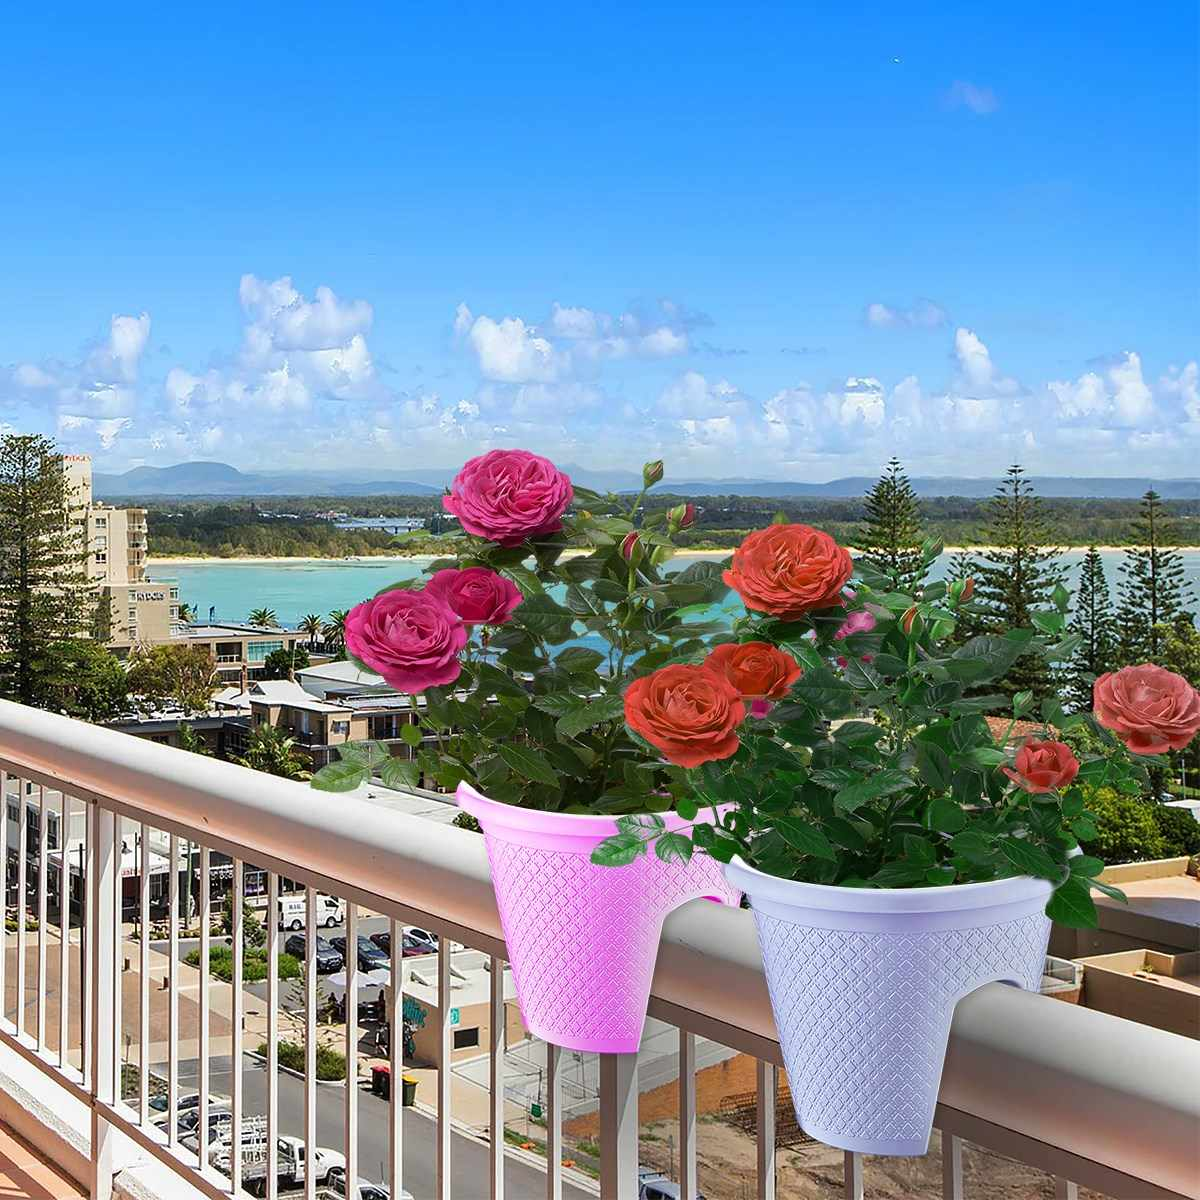 Picture of: Balcony Railing Planter For Small Balcony Locked Type Decoration Plastic English Made Mixed Colors Set Of 2 Flower Pots Planters Aliexpress